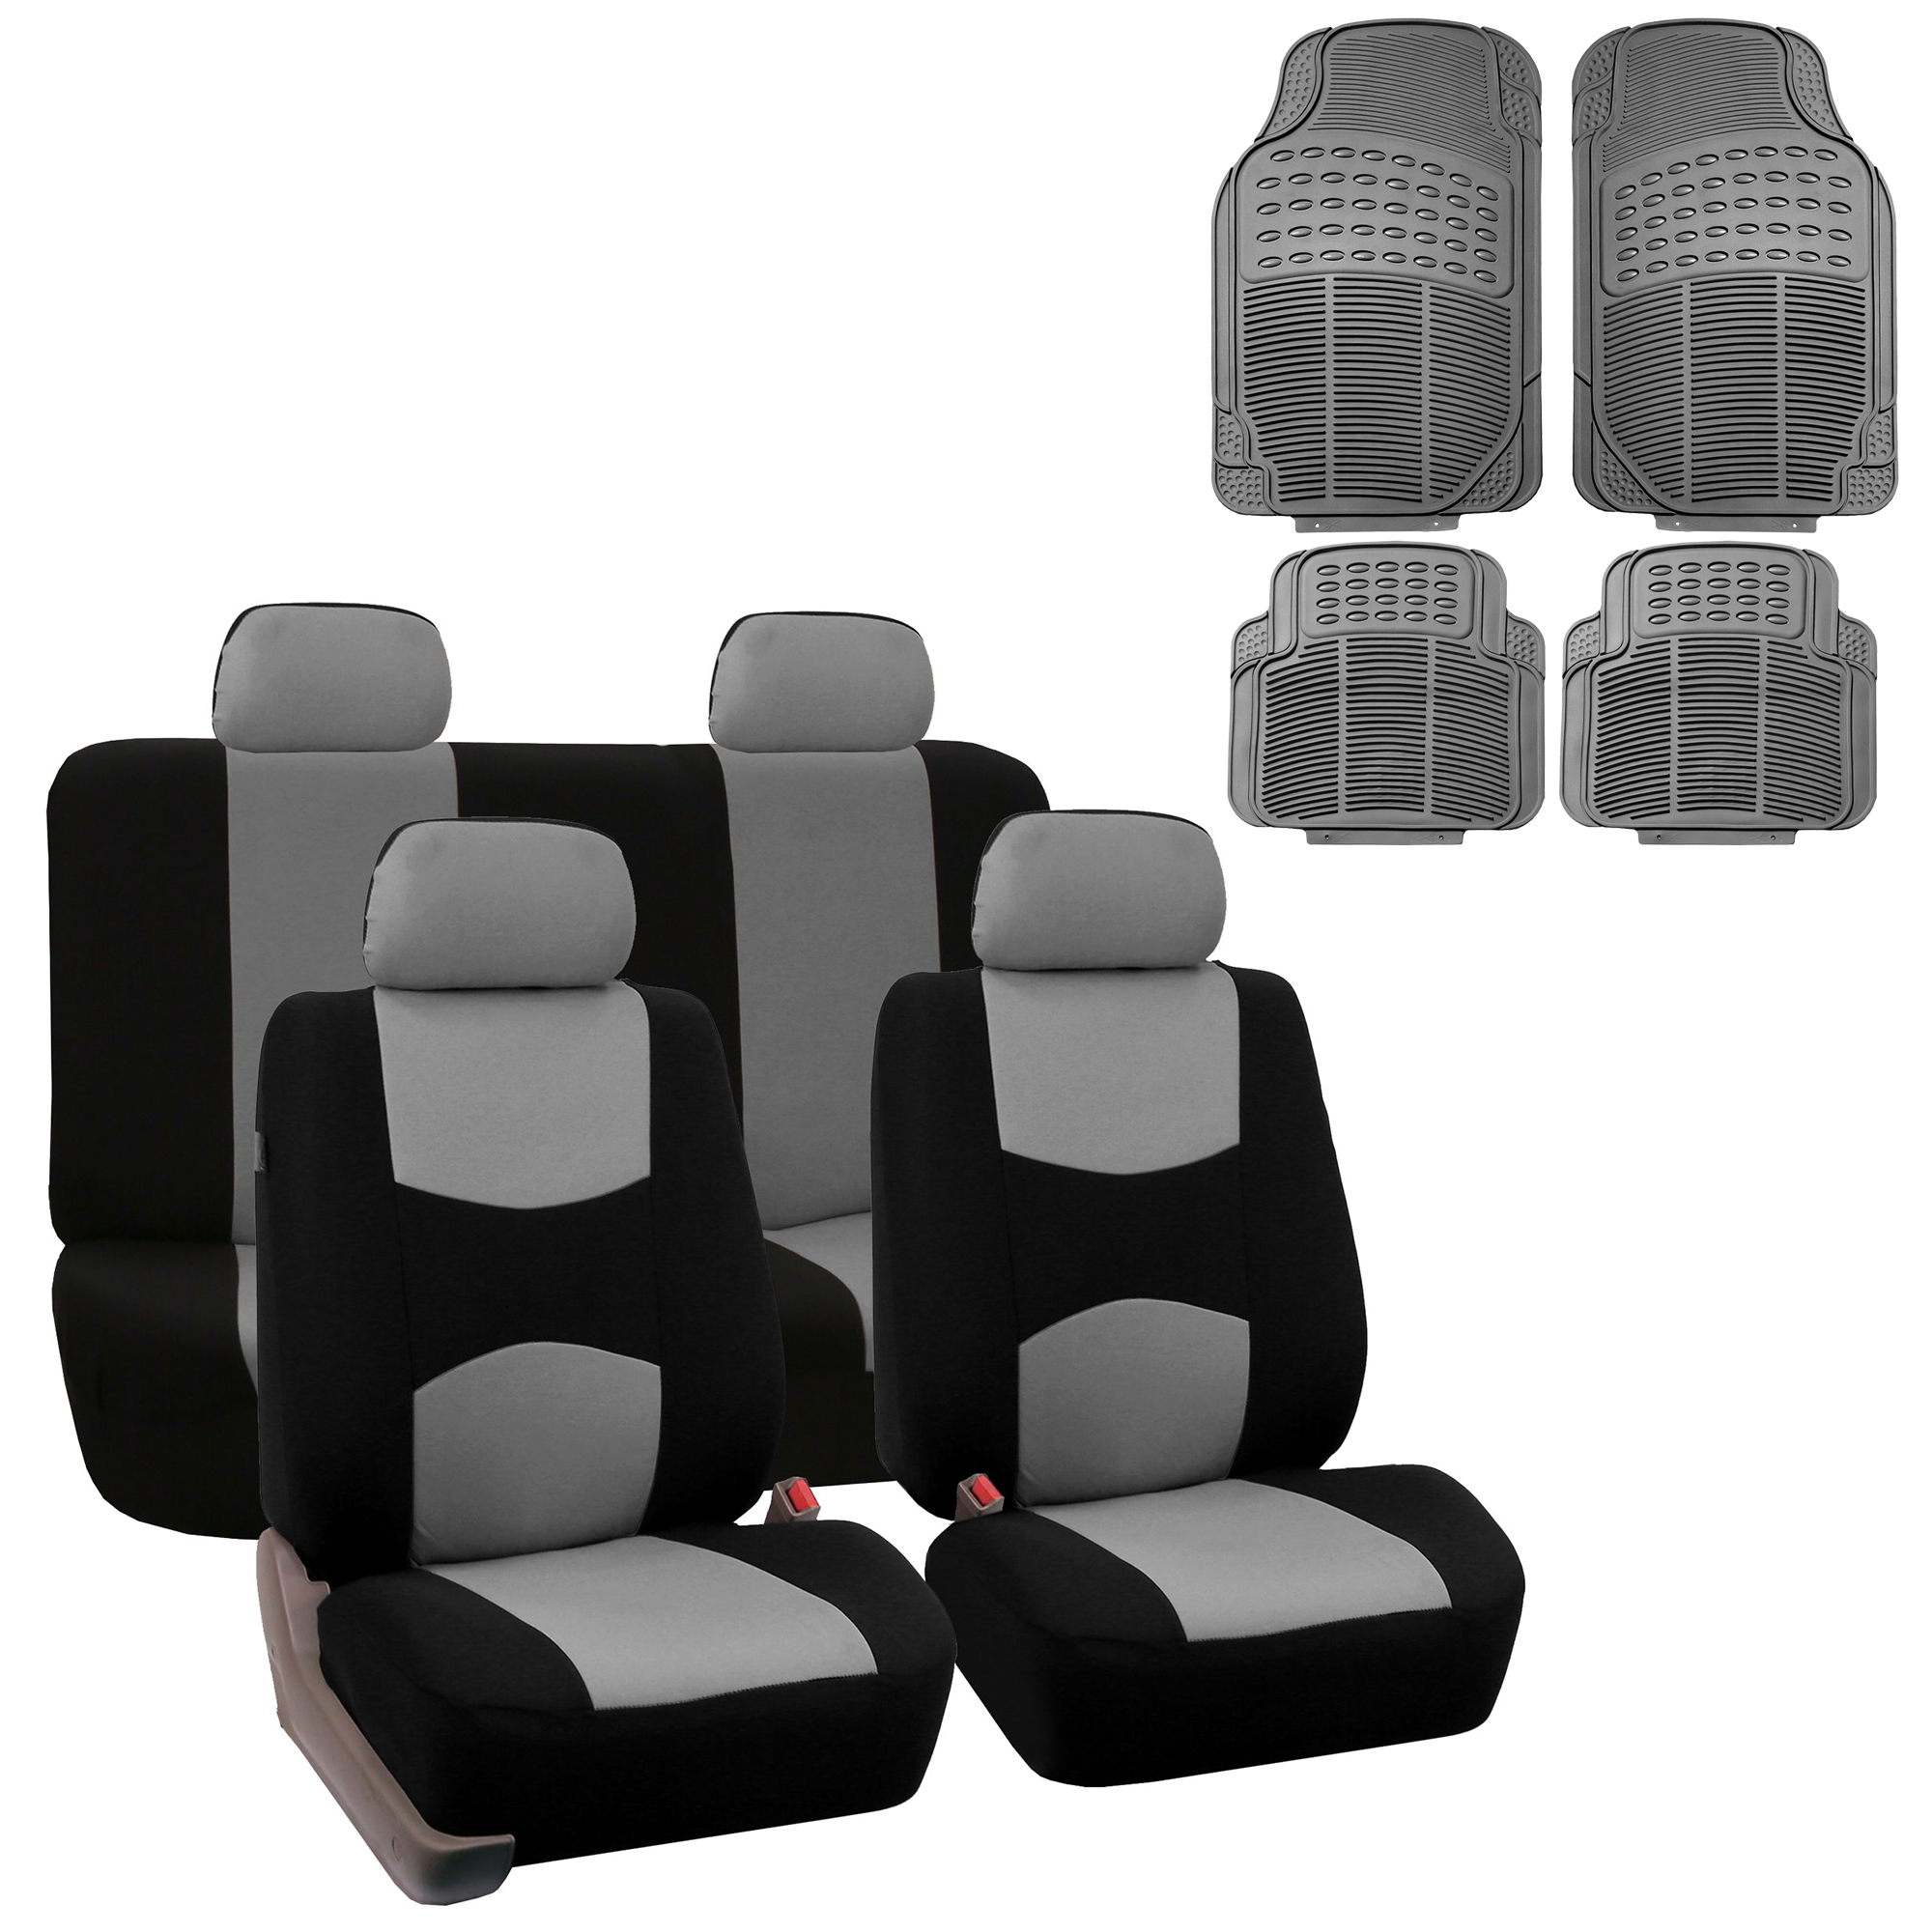 FH Group Cloth Solid Bench Seat Cover, Full Set with Gray Heavy Duty Floor Mats, Gray Black